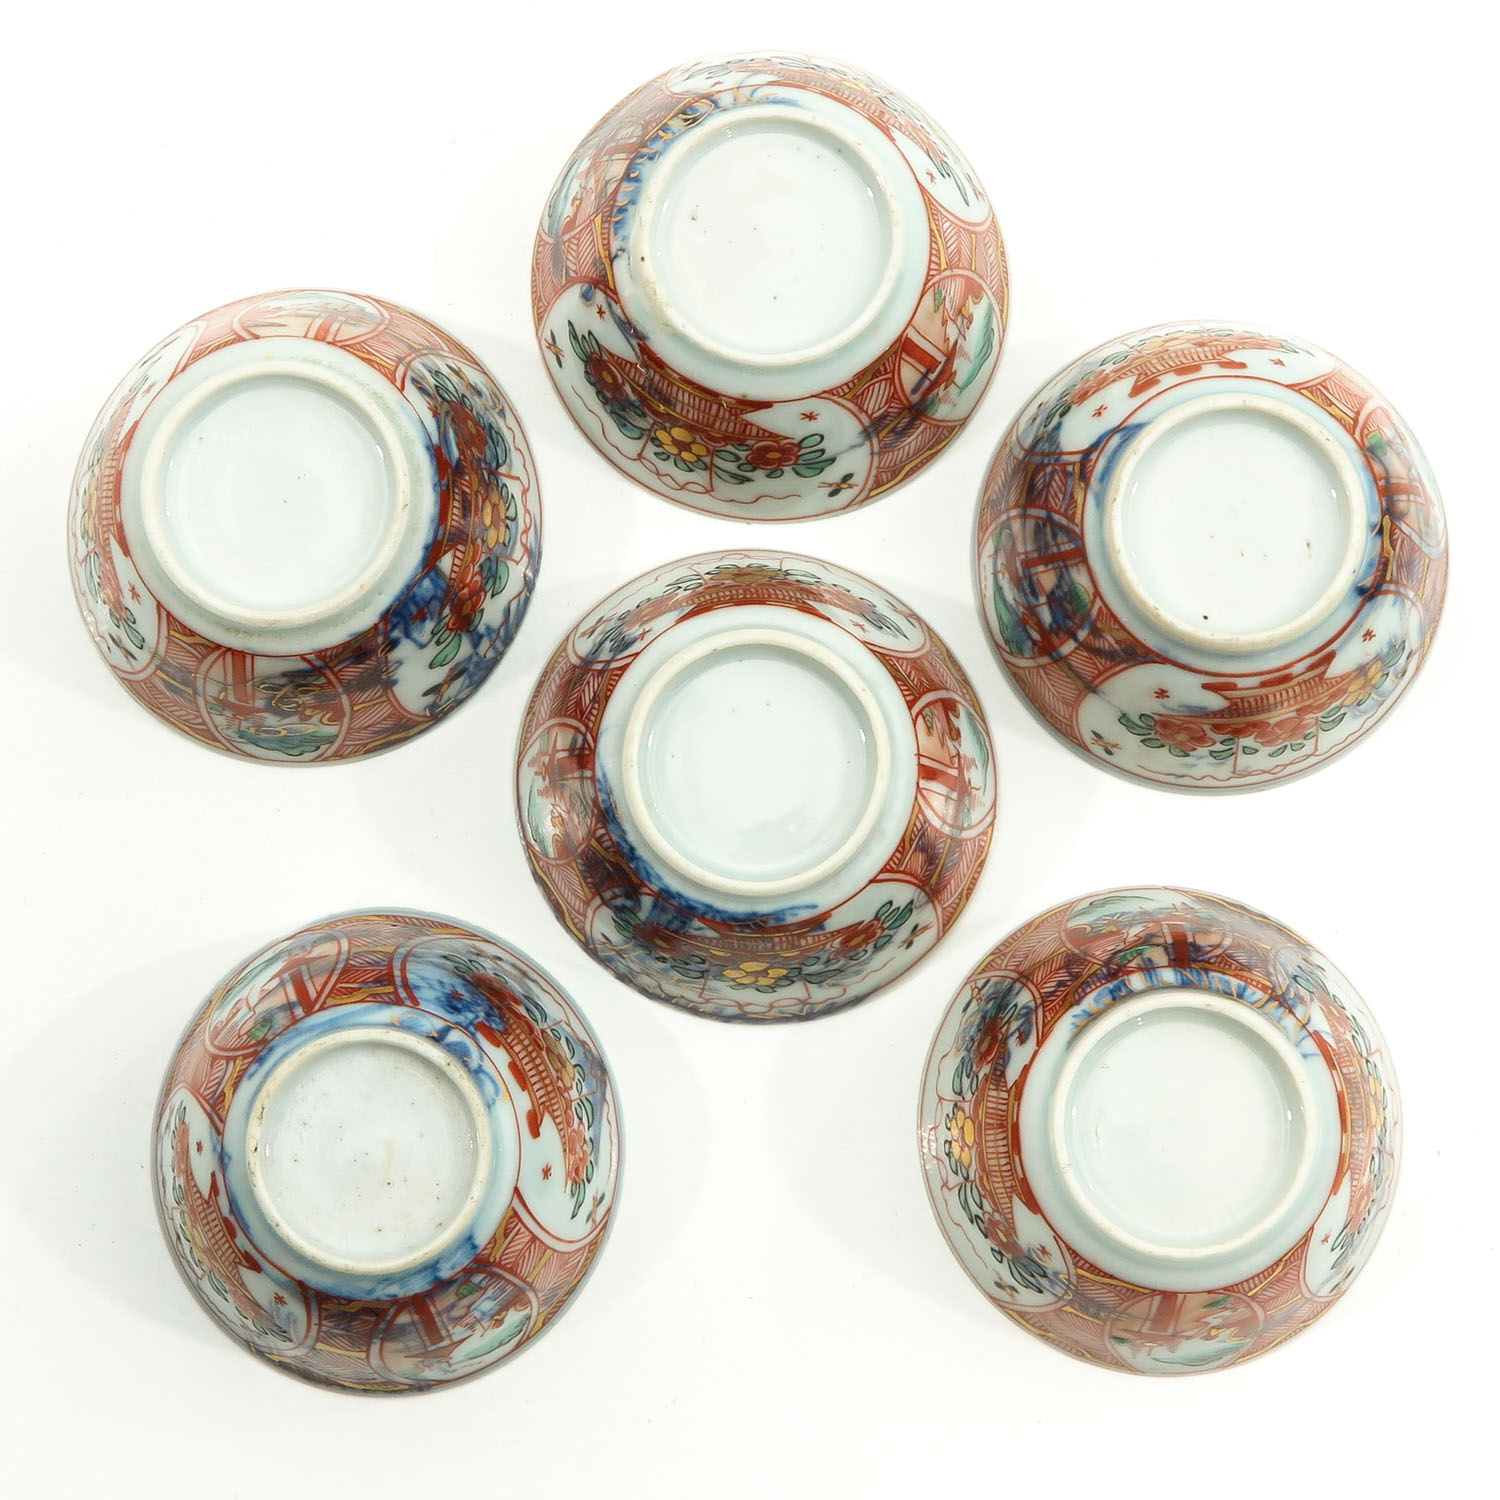 A Series of 6 Cups and Saucers - Image 6 of 10